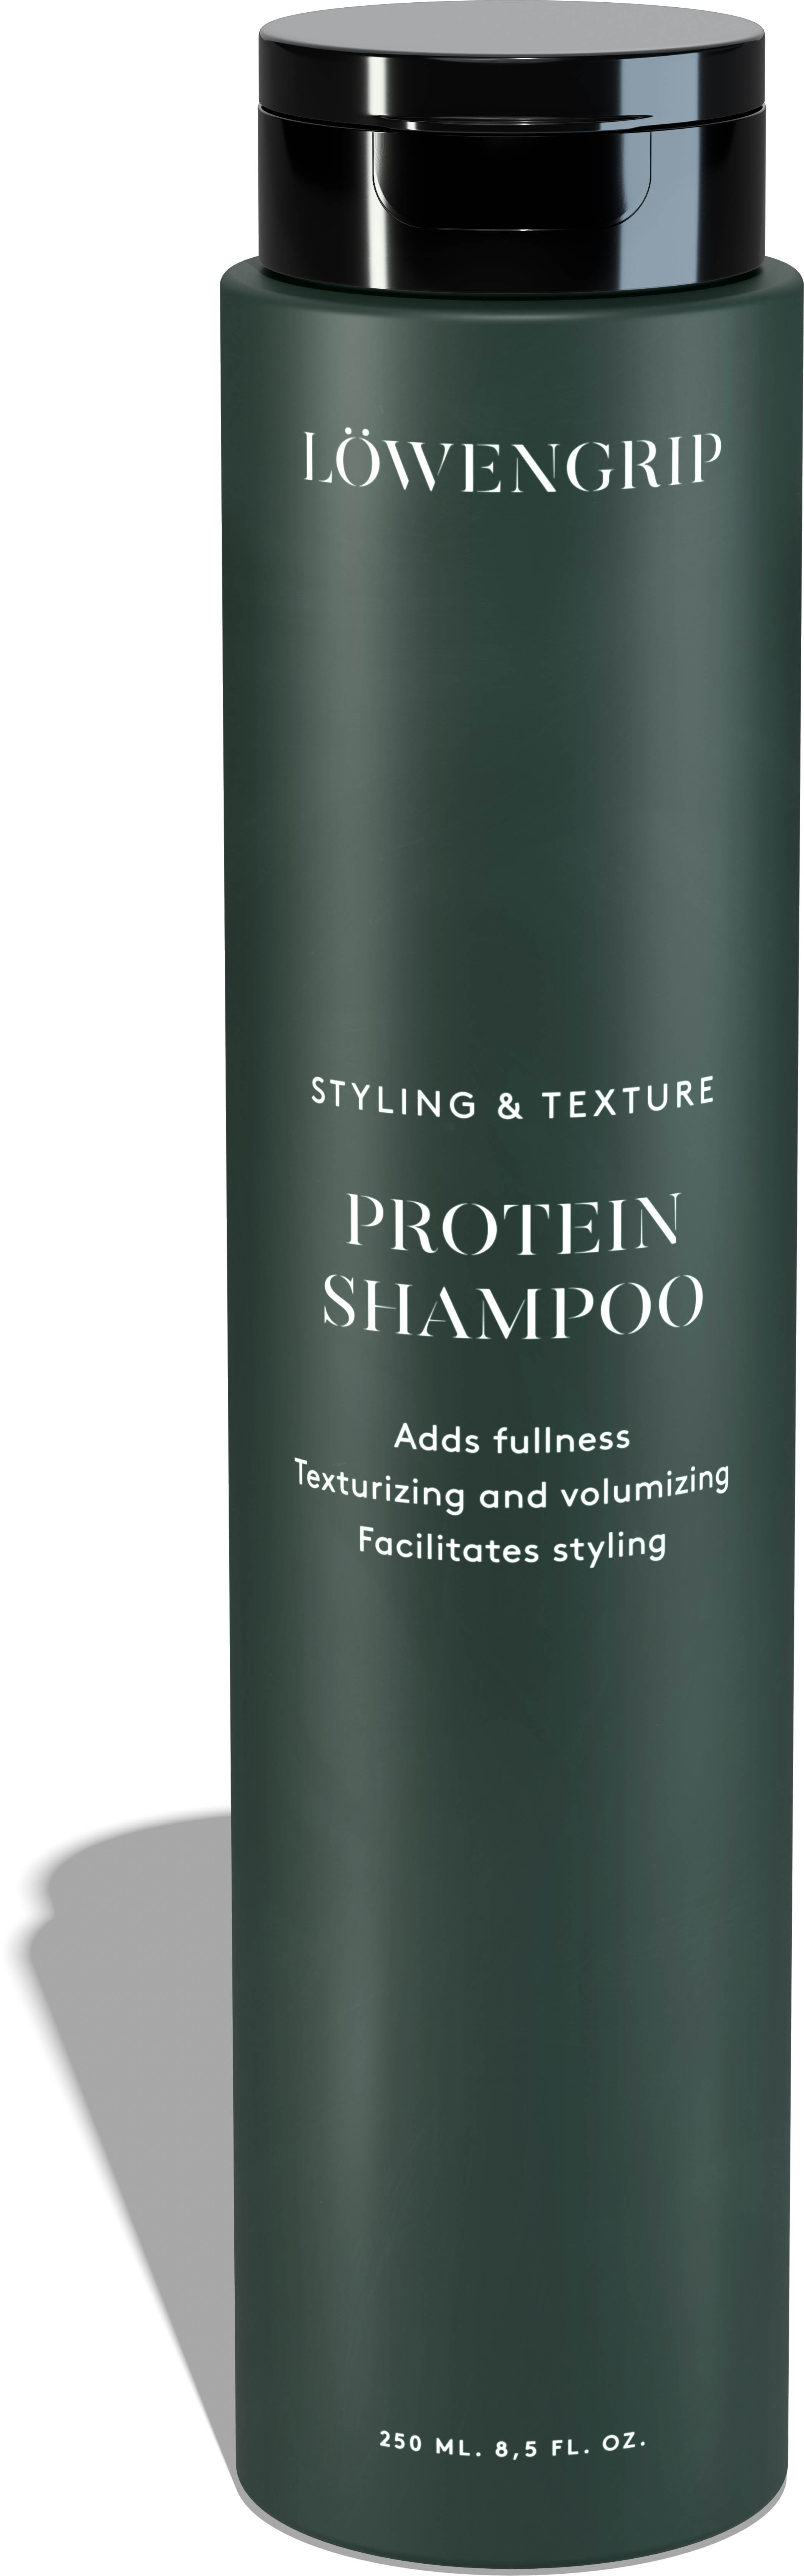 Styling & Texture - Protein Shampoo 250ml